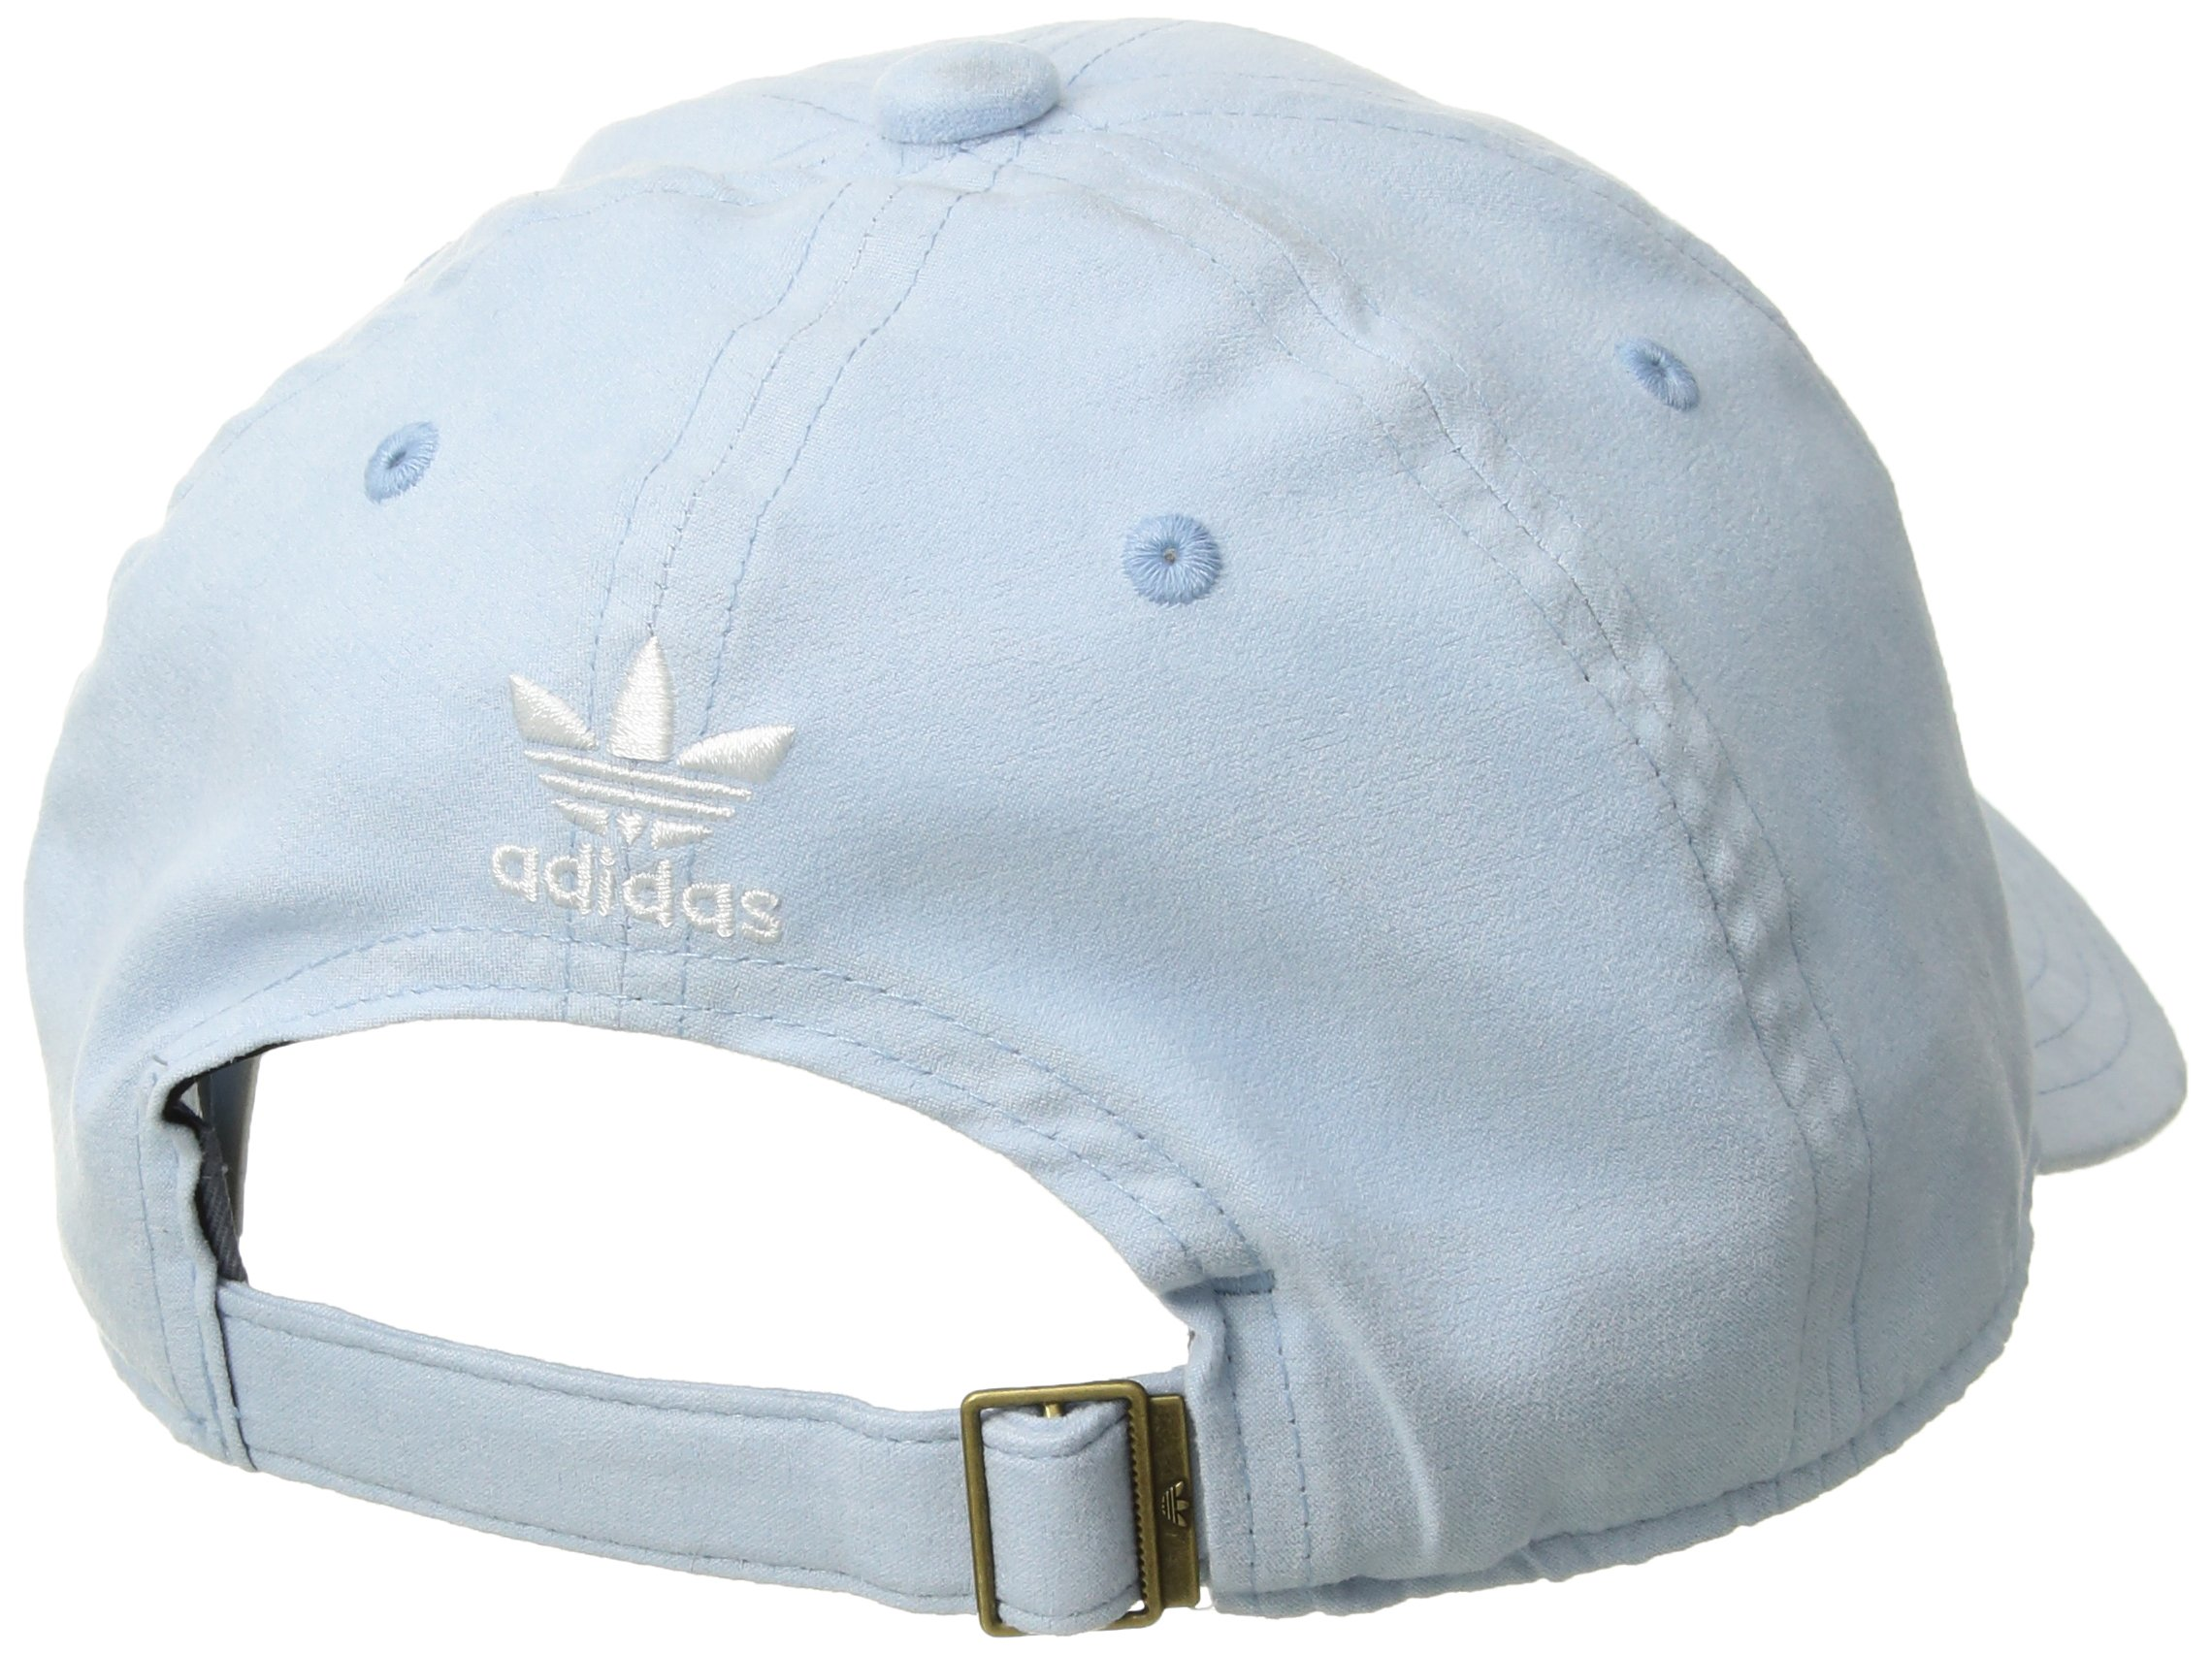 adidas Women's Originals Relaxed Plus Adjustable Strapback Cap, Aero Blue Suede/White, One Size by adidas (Image #2)